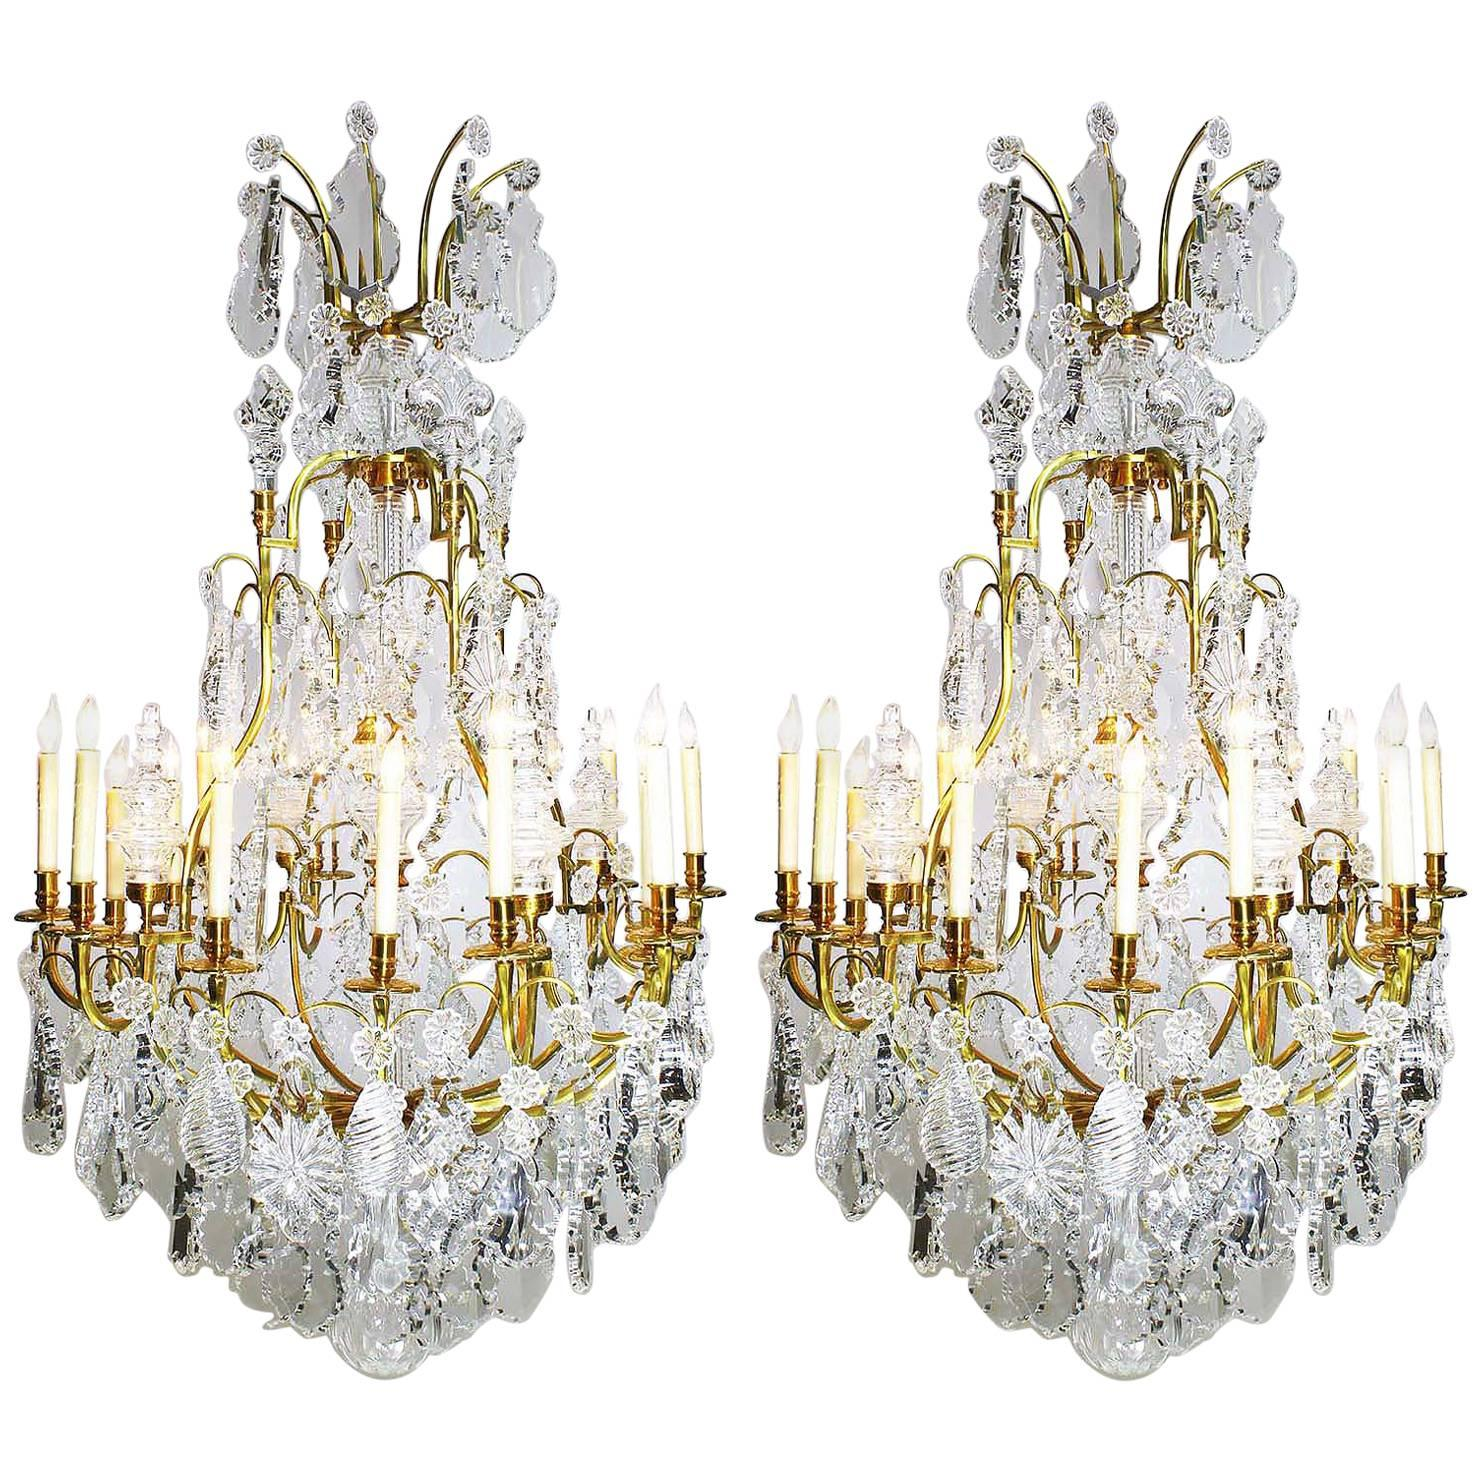 Pair of Louis XV Style 16-Light Chandeliers, Manner of Baccarat